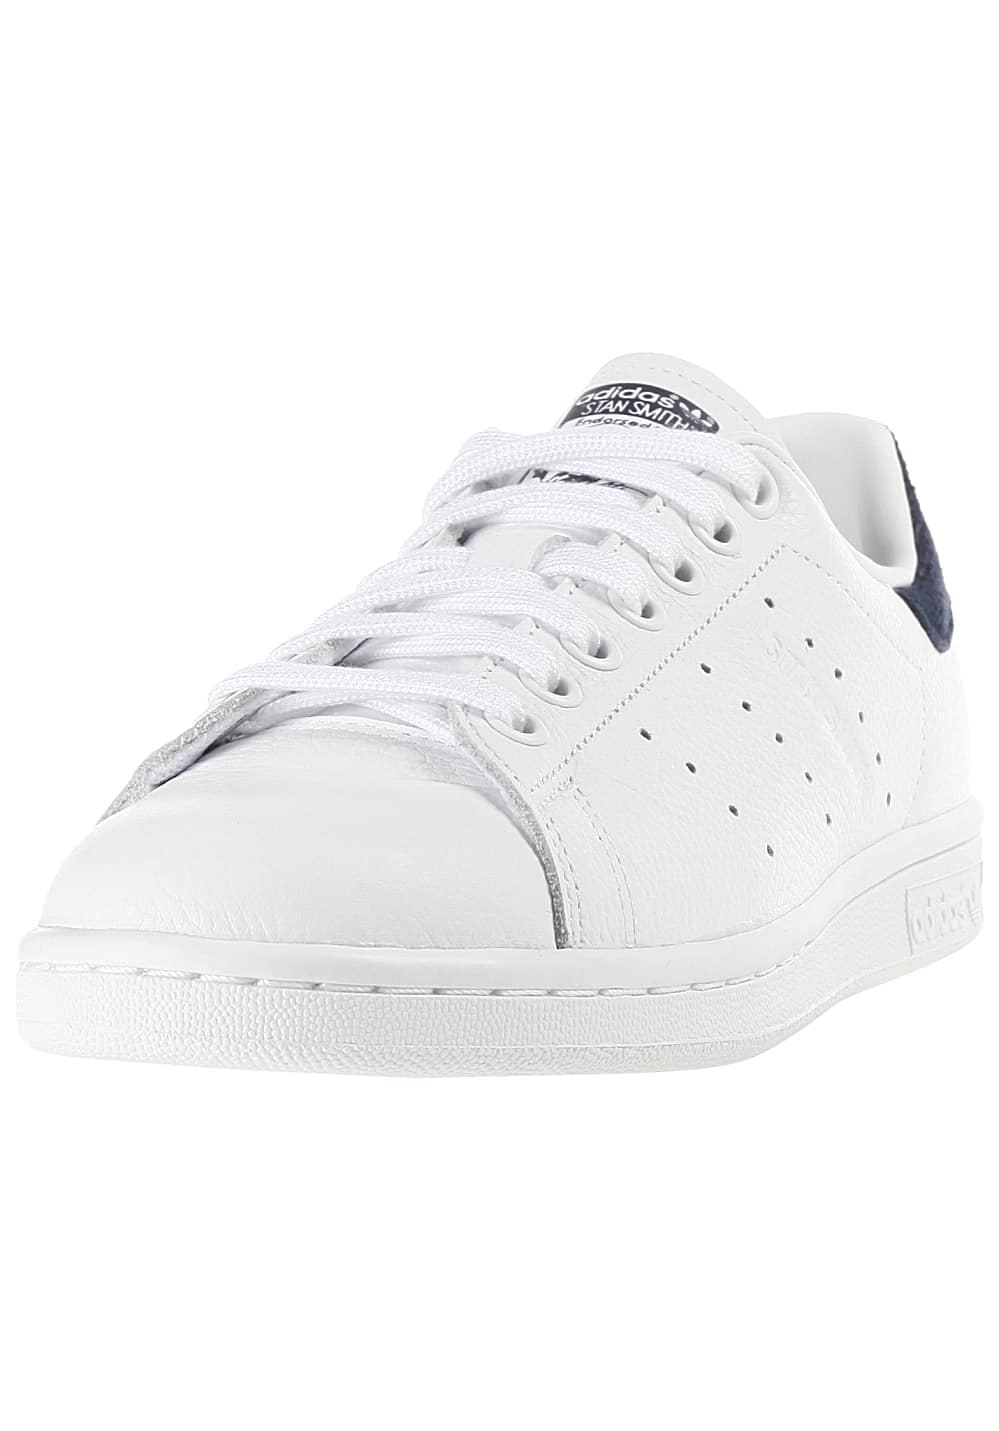 save off cb5ce 5b1df ADIDAS ORIGINALS Stan Smith - Sneakers for Women - White